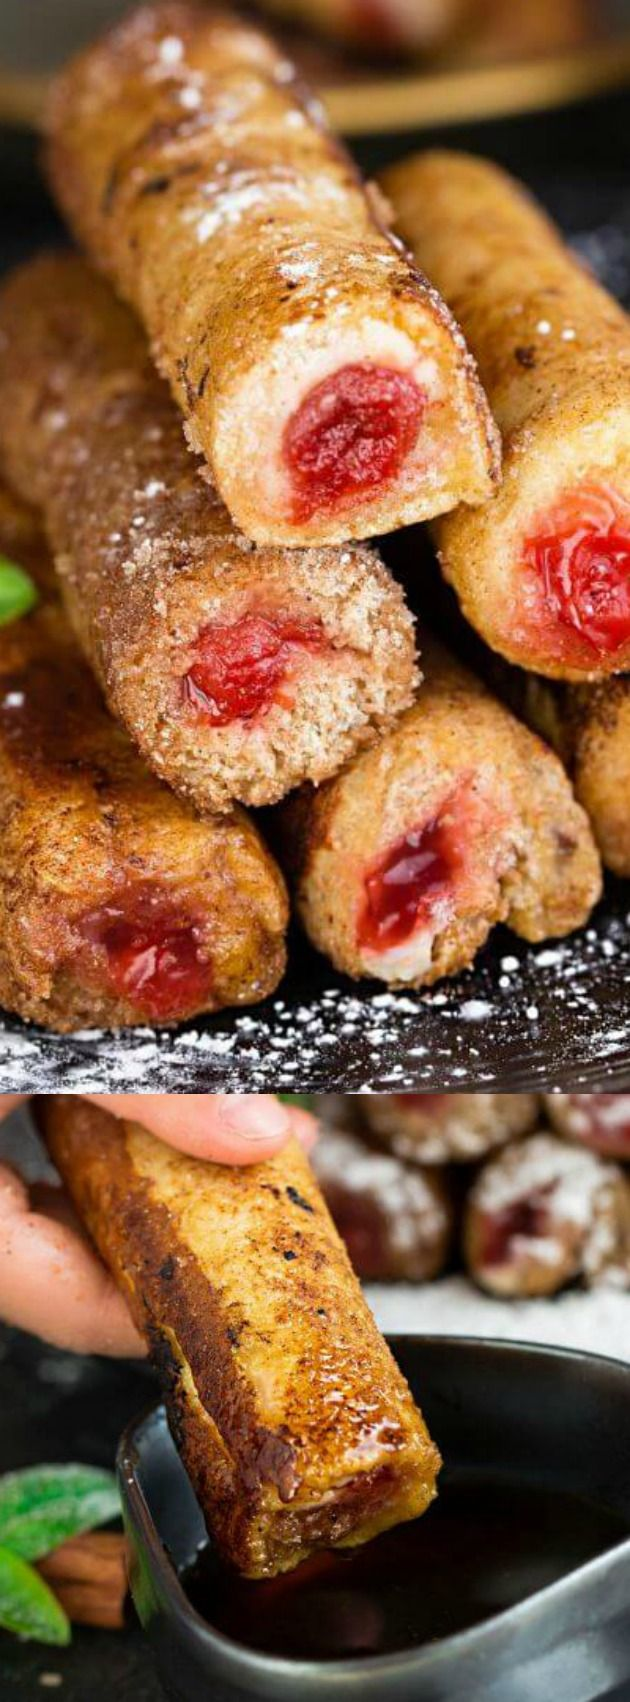 These Cherry Cheesecake French Toast Roll Ups from Life Made Sweeter puts a delicious spin on traditional french toast roll ups. The cherry cheesecake filling with a fluffy cinnamon sugar coated outside makes for the perfect breakfast or brunch snack that anyone will just love!